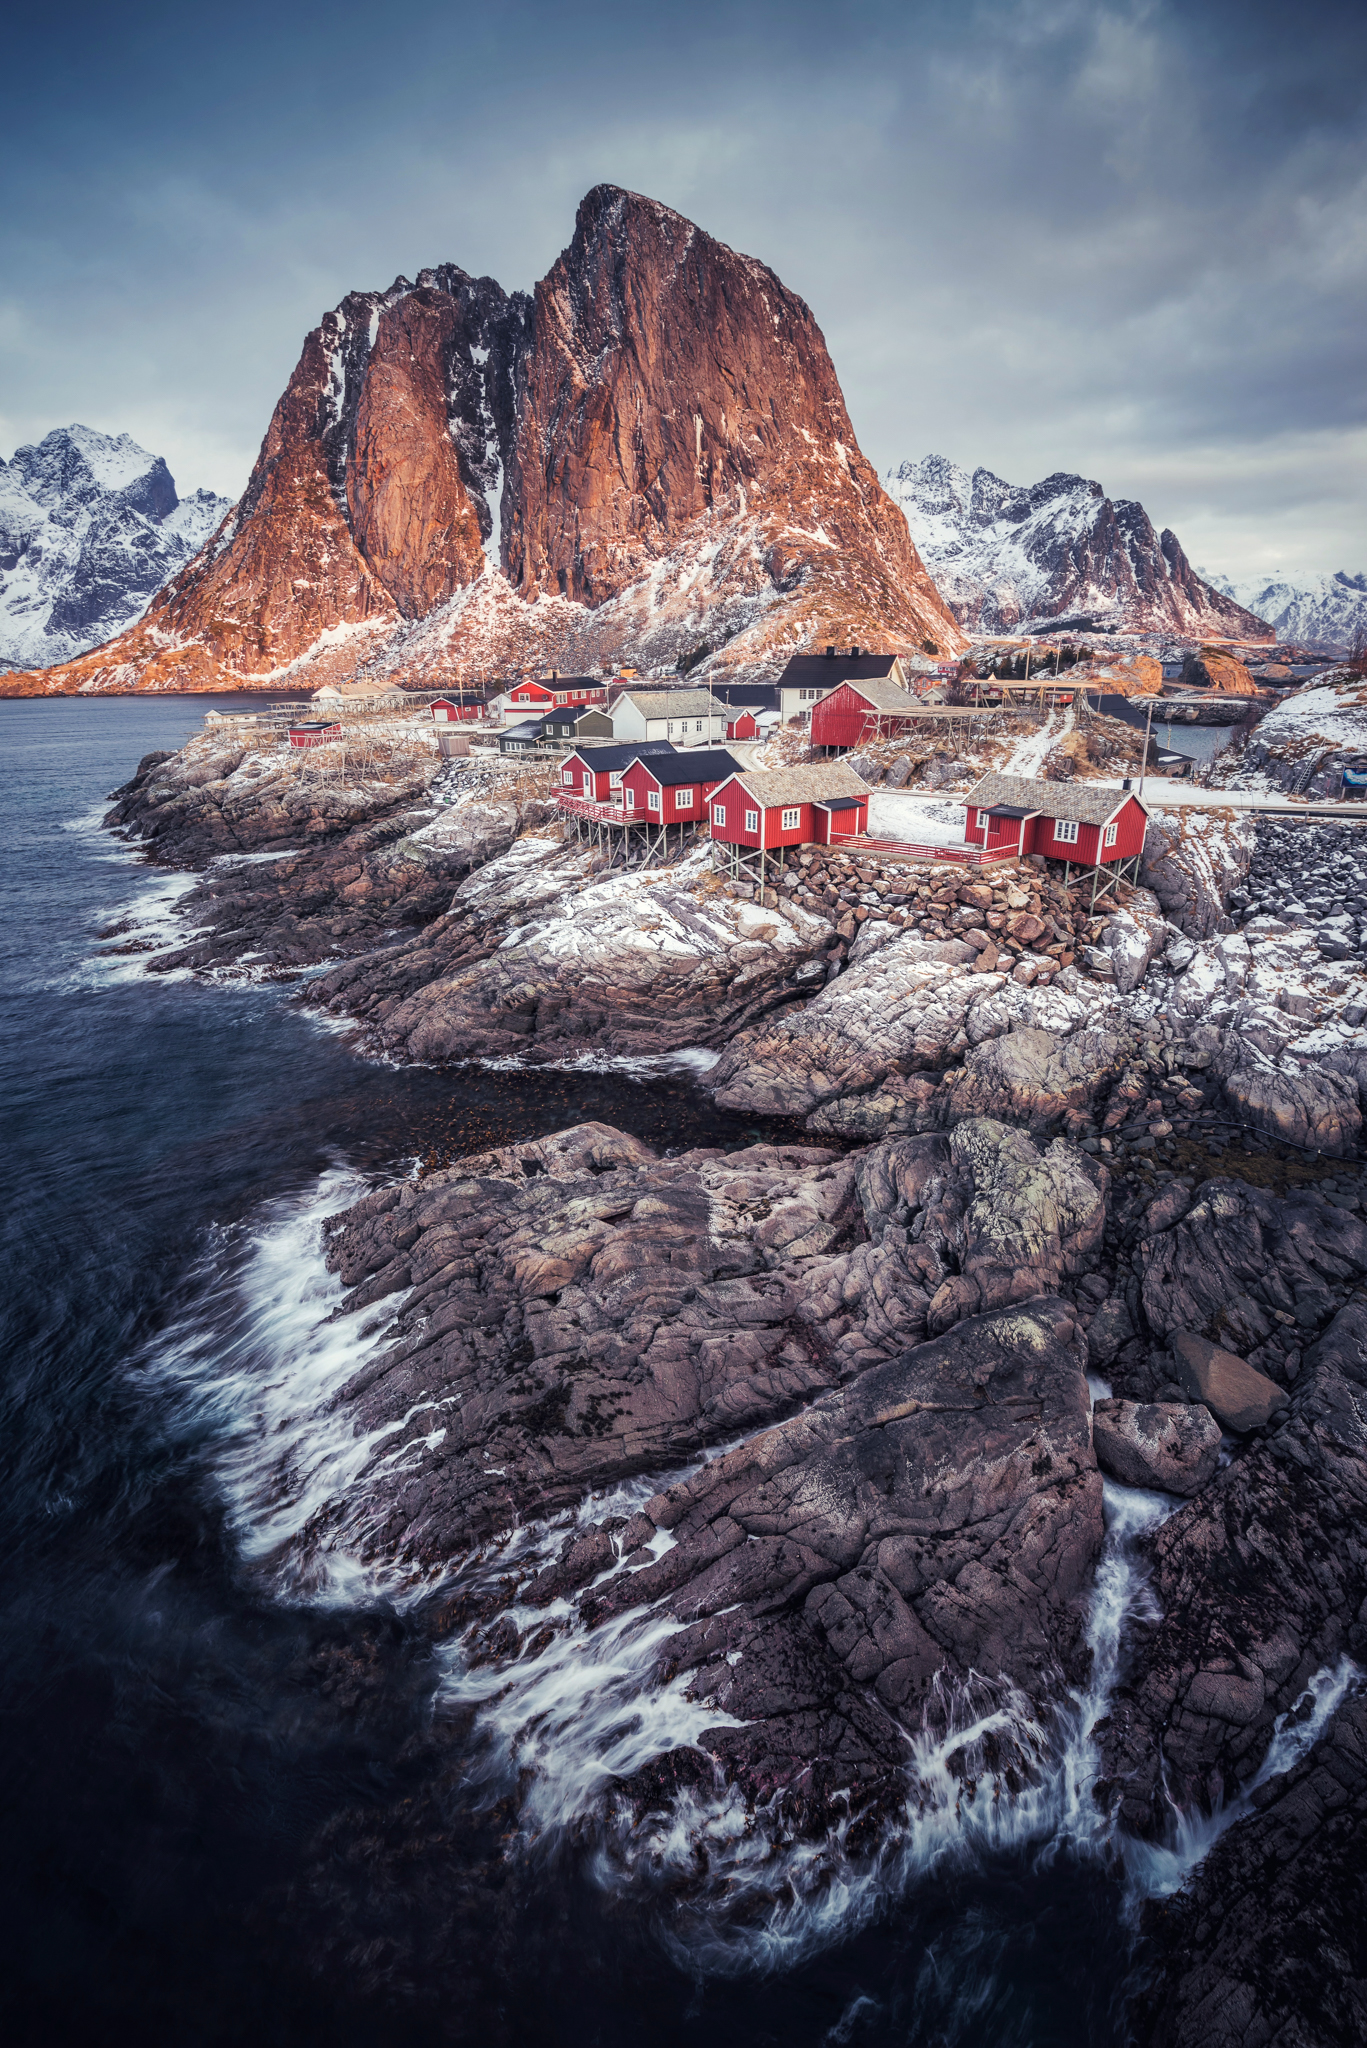 The red houses of Hamnoy - an iconic scene.